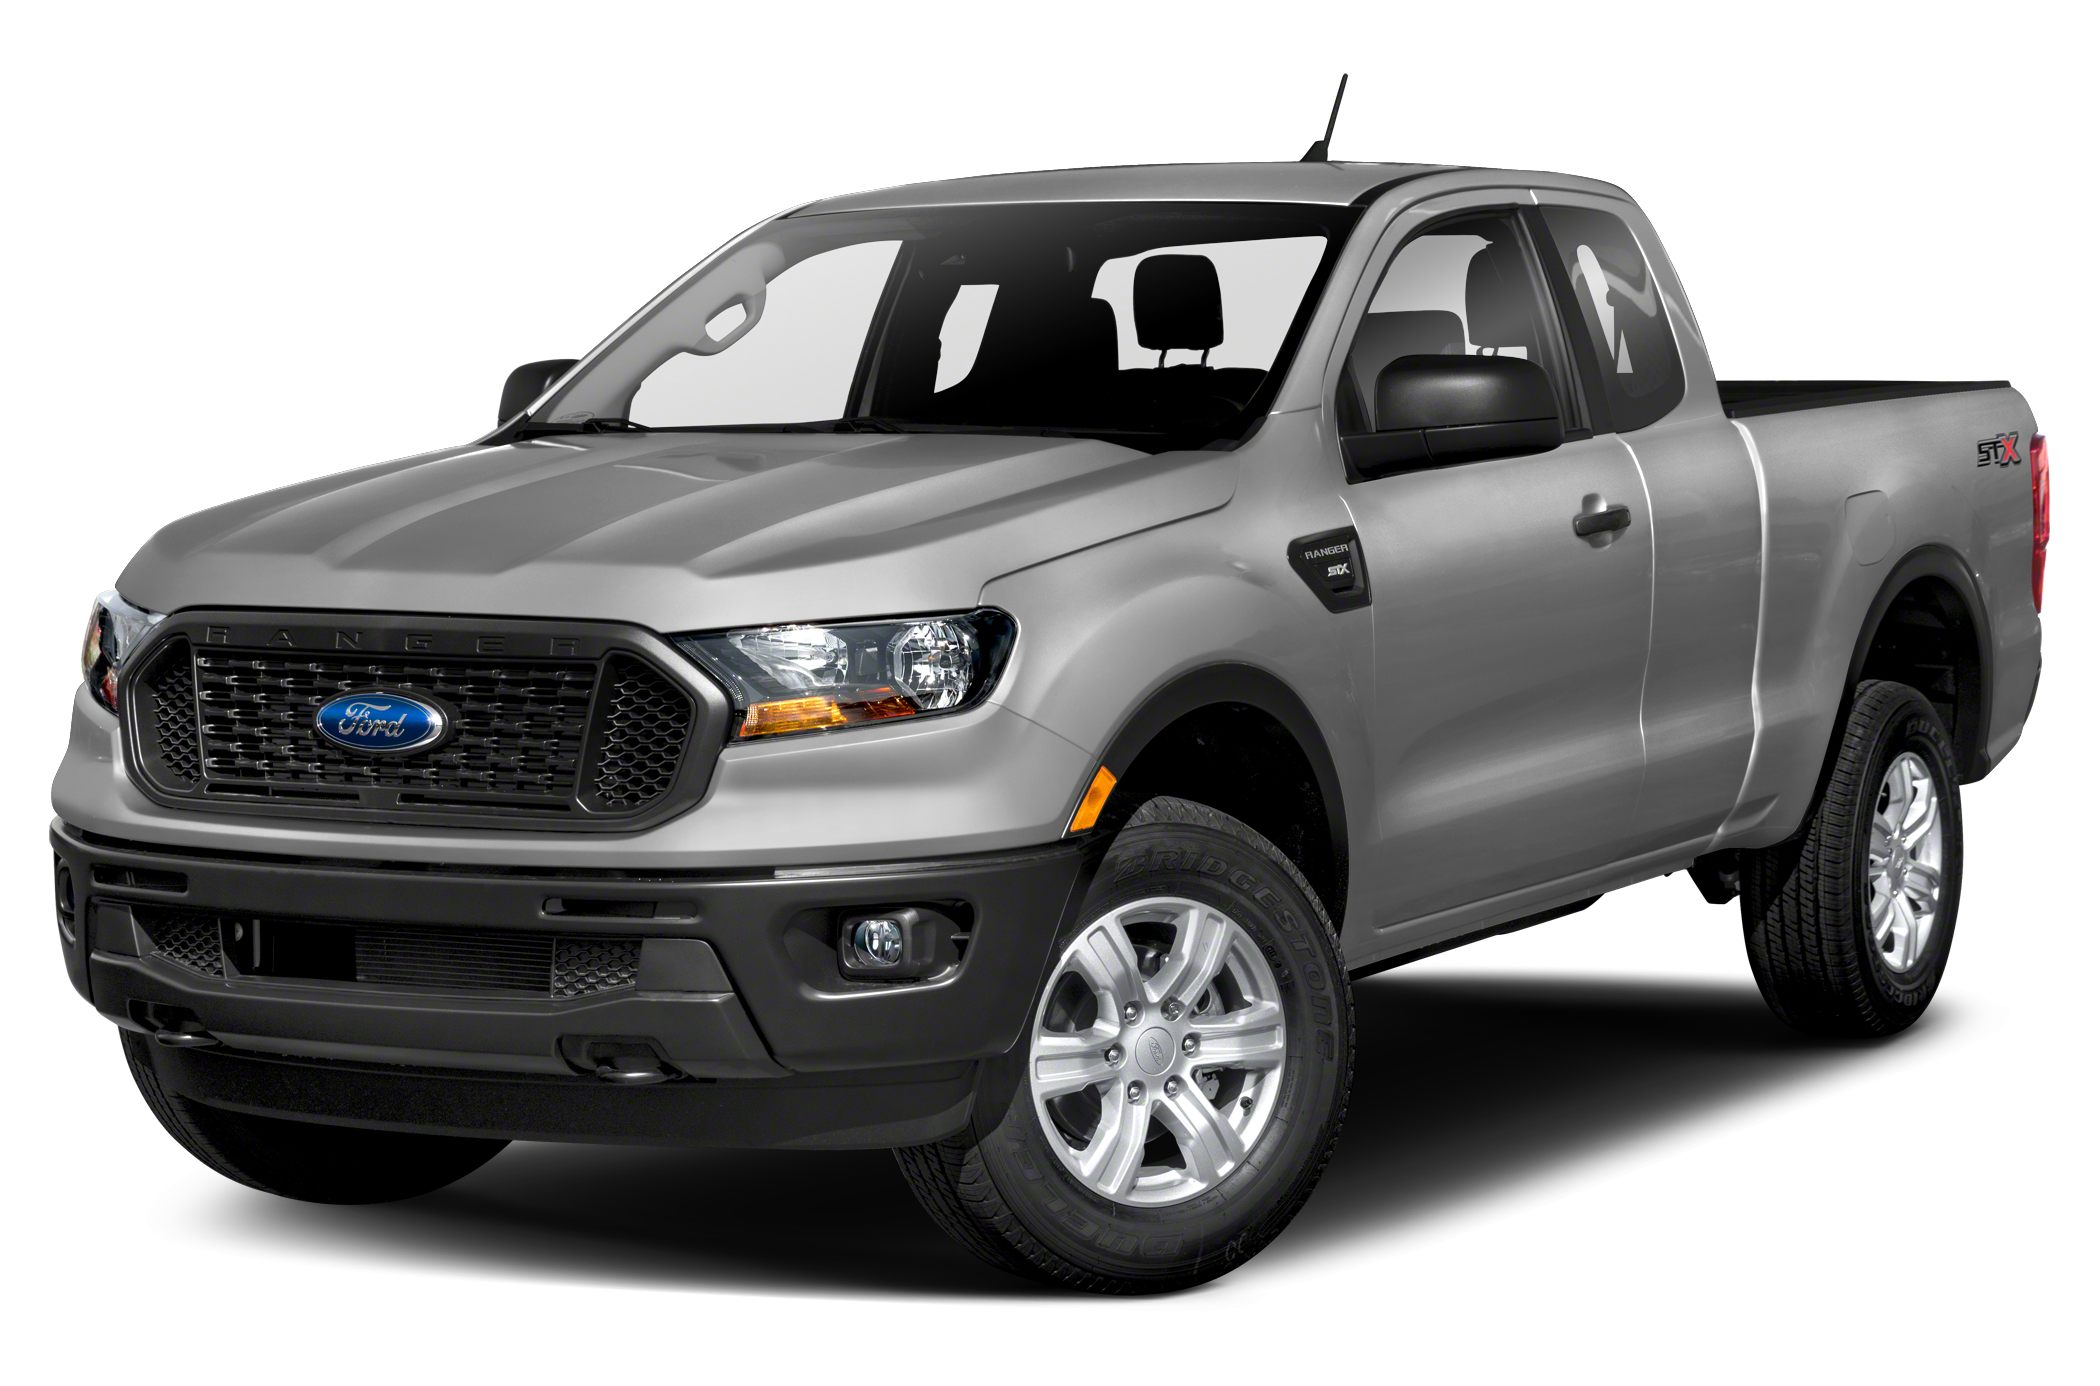 2019 Ford Ranger Deals, Prices, Incentives & Leases, Overview - CarsDirect